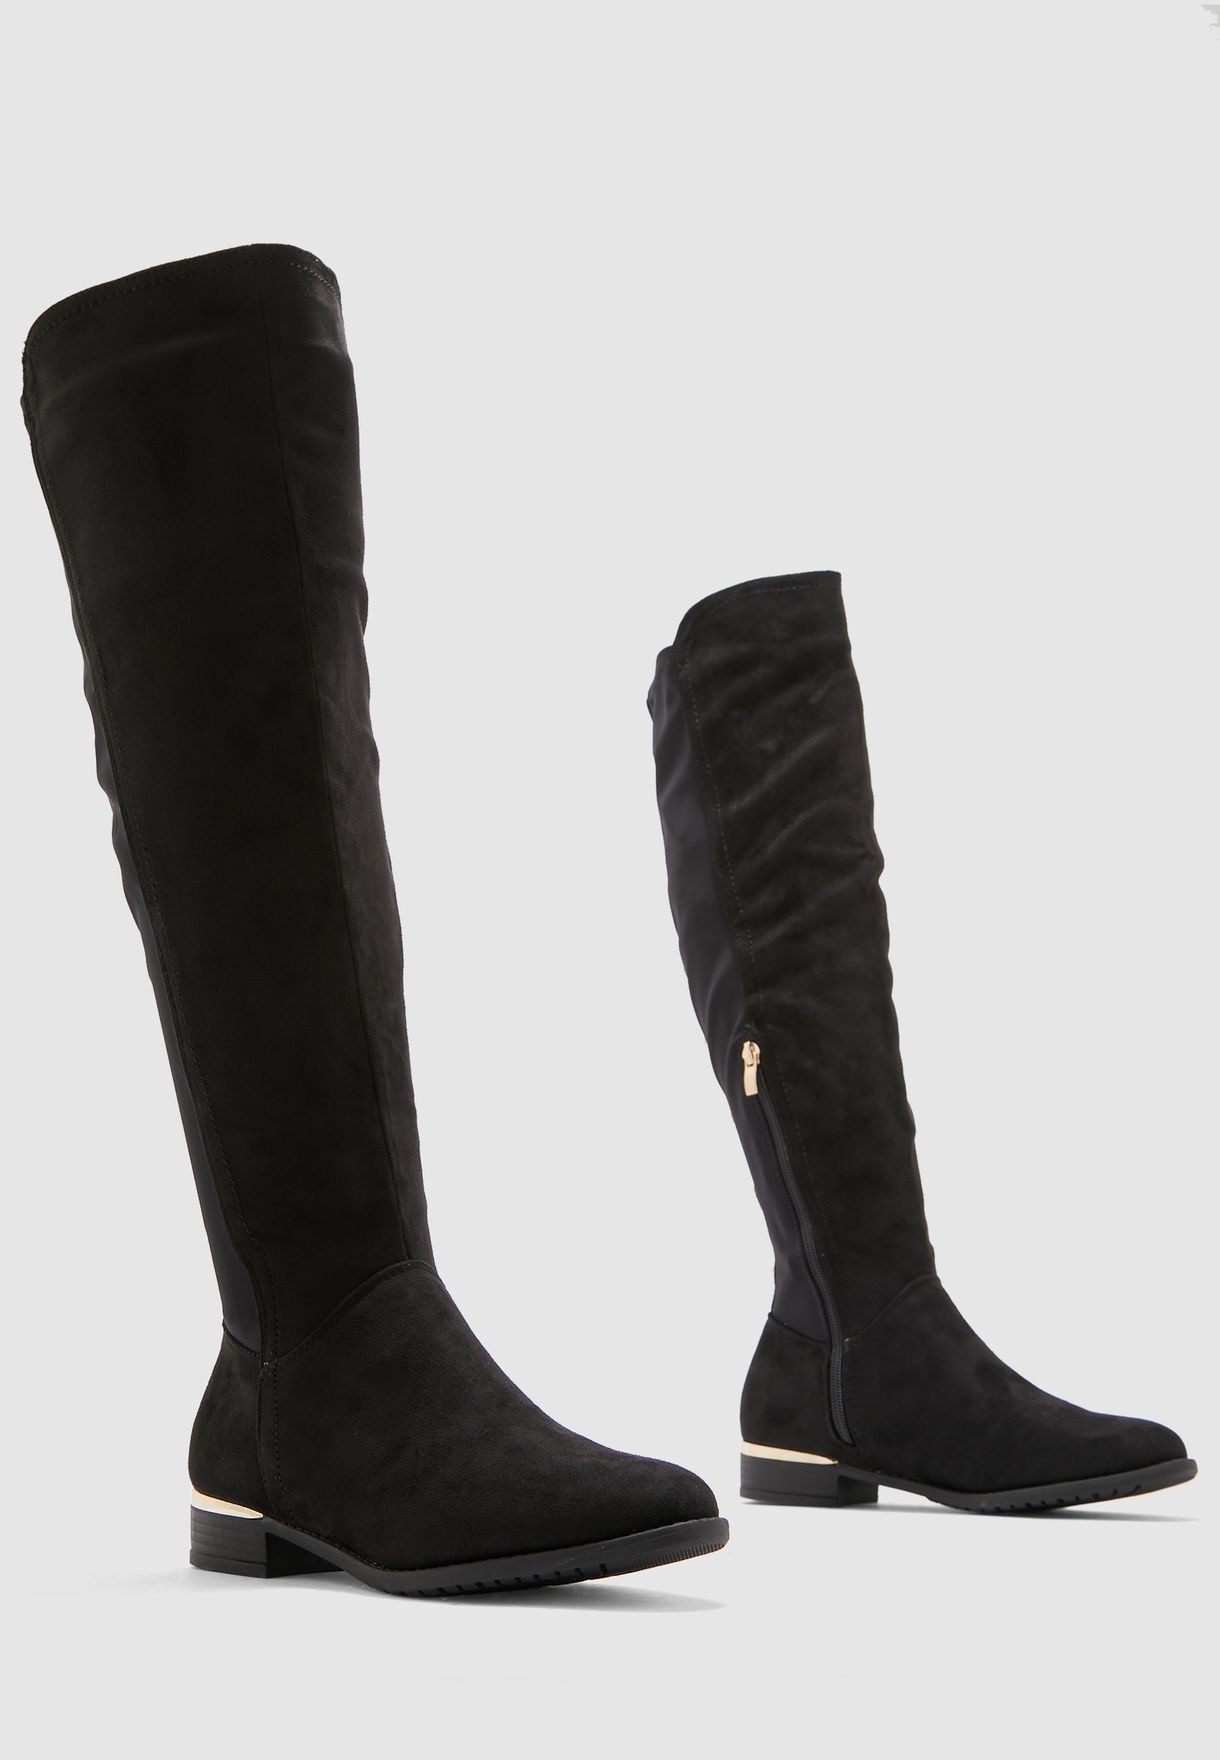 Knee High Boots With Metallic Details